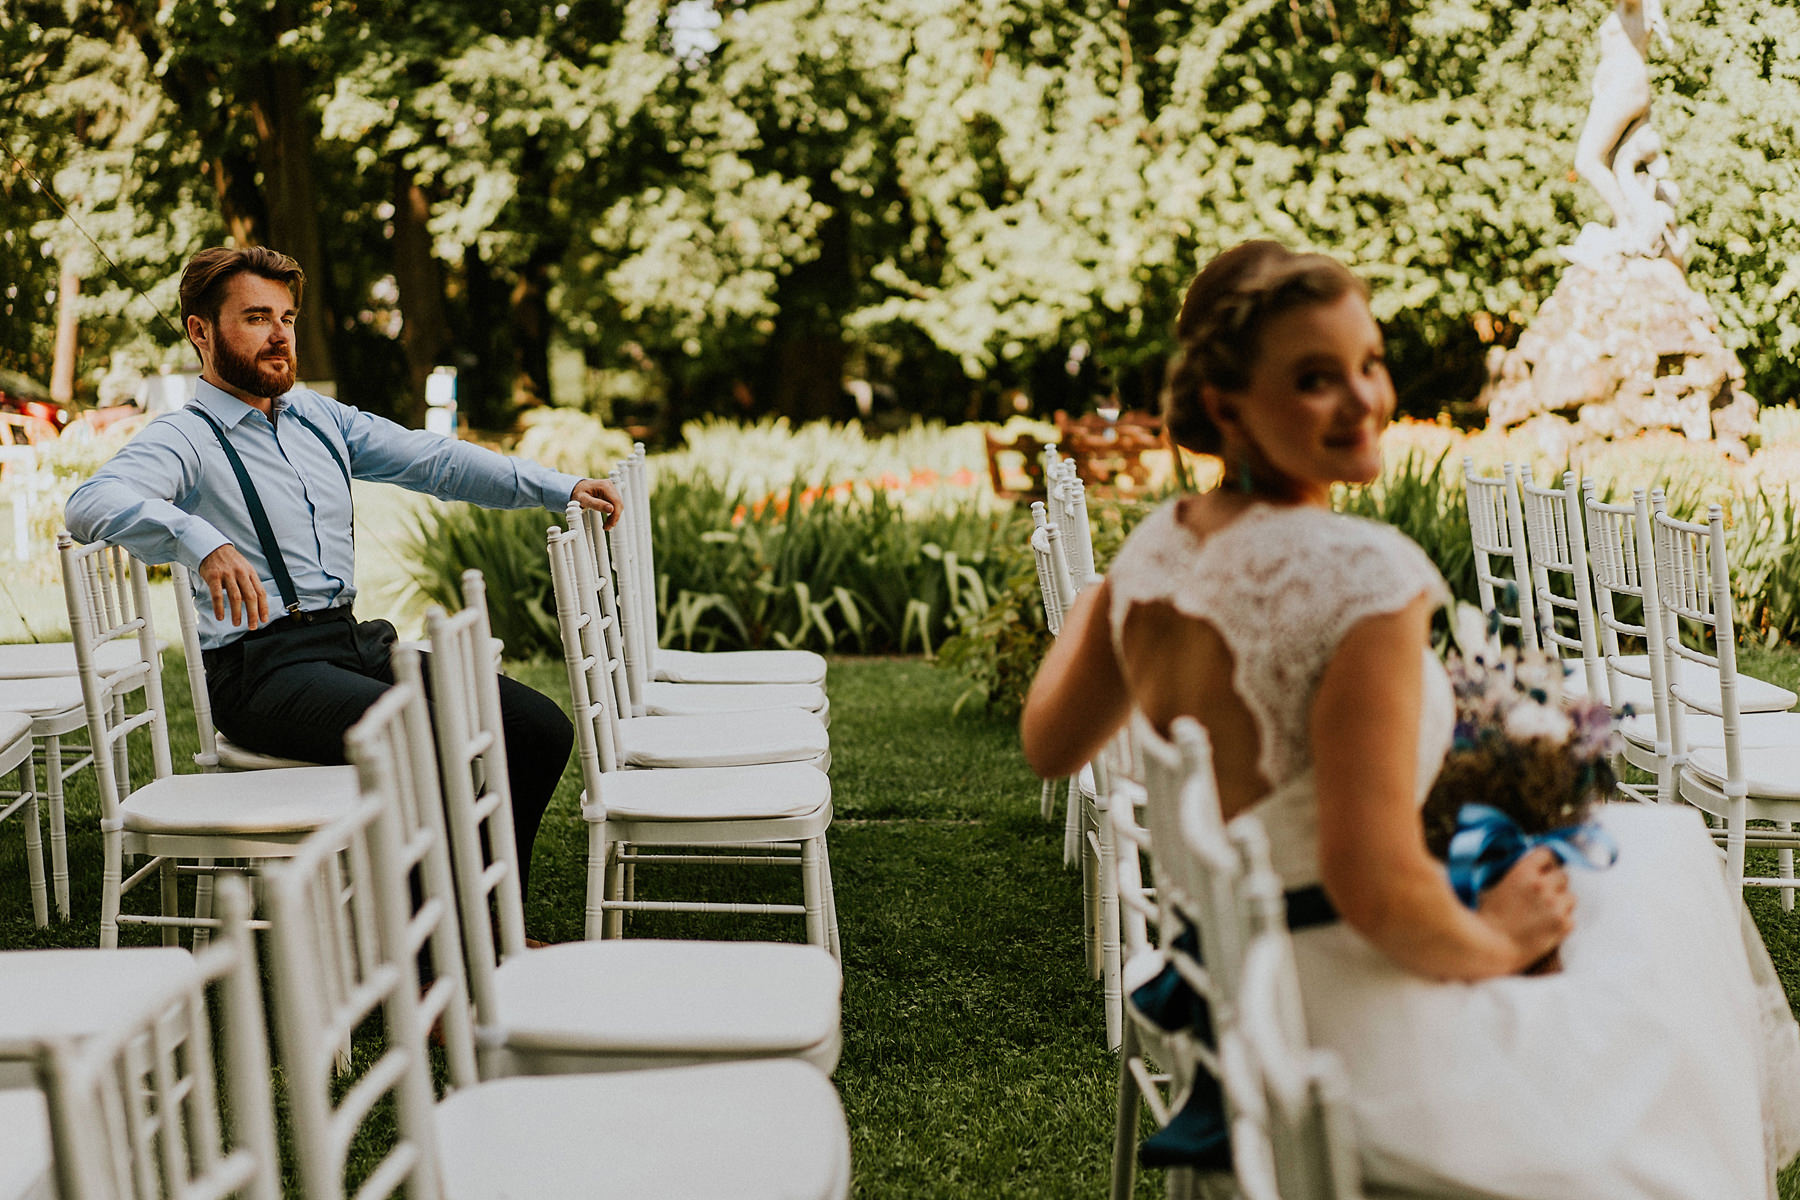 Palac Zelenskich outdoor wedding